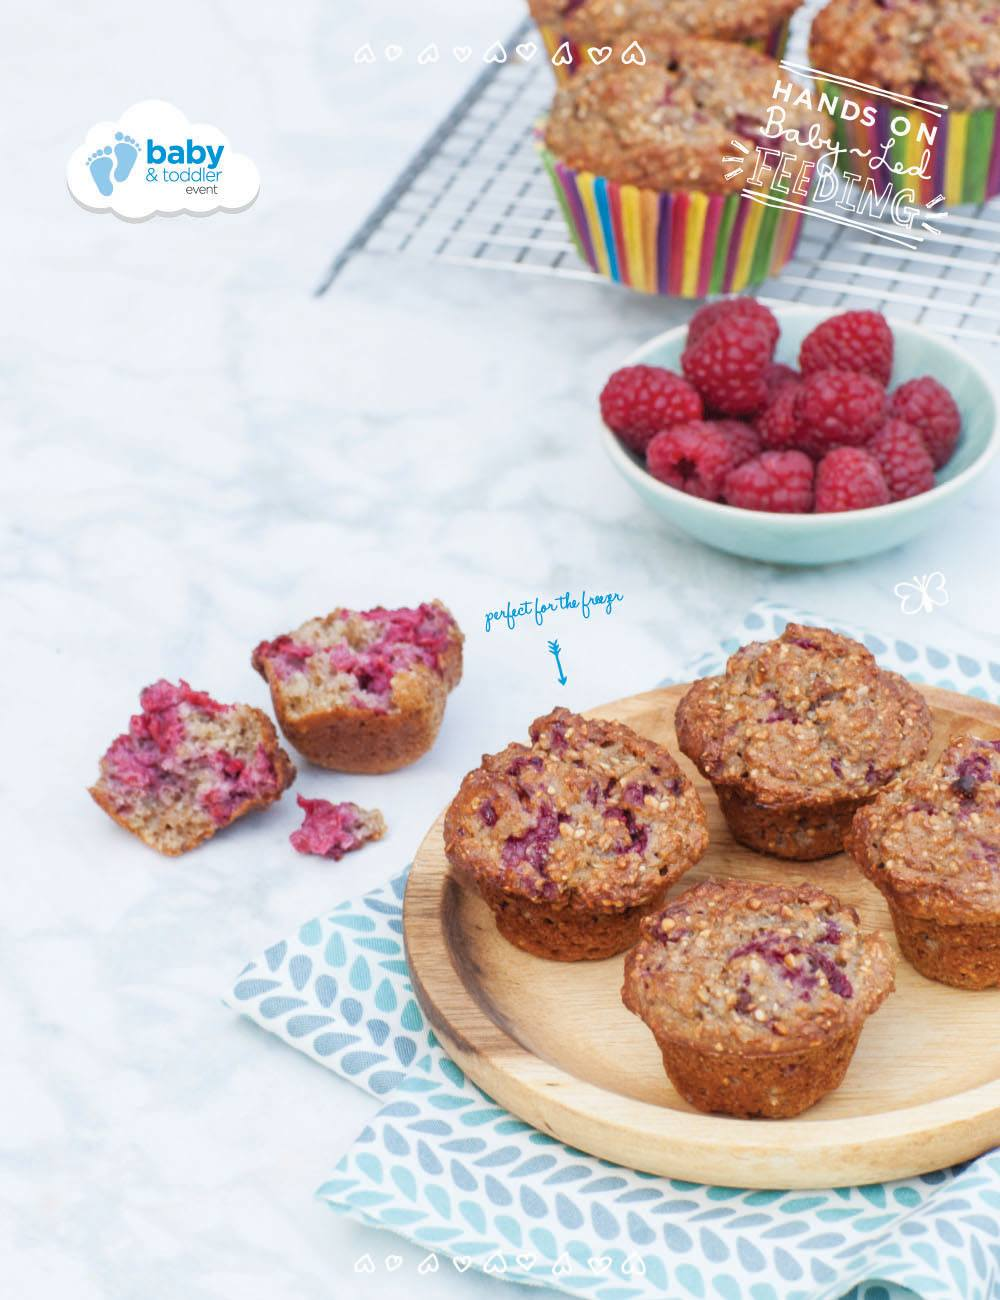 Baby-Led-Feeding-Dunnes-Stores-Healthy-Breakfast-Muffins-Recipe-Image